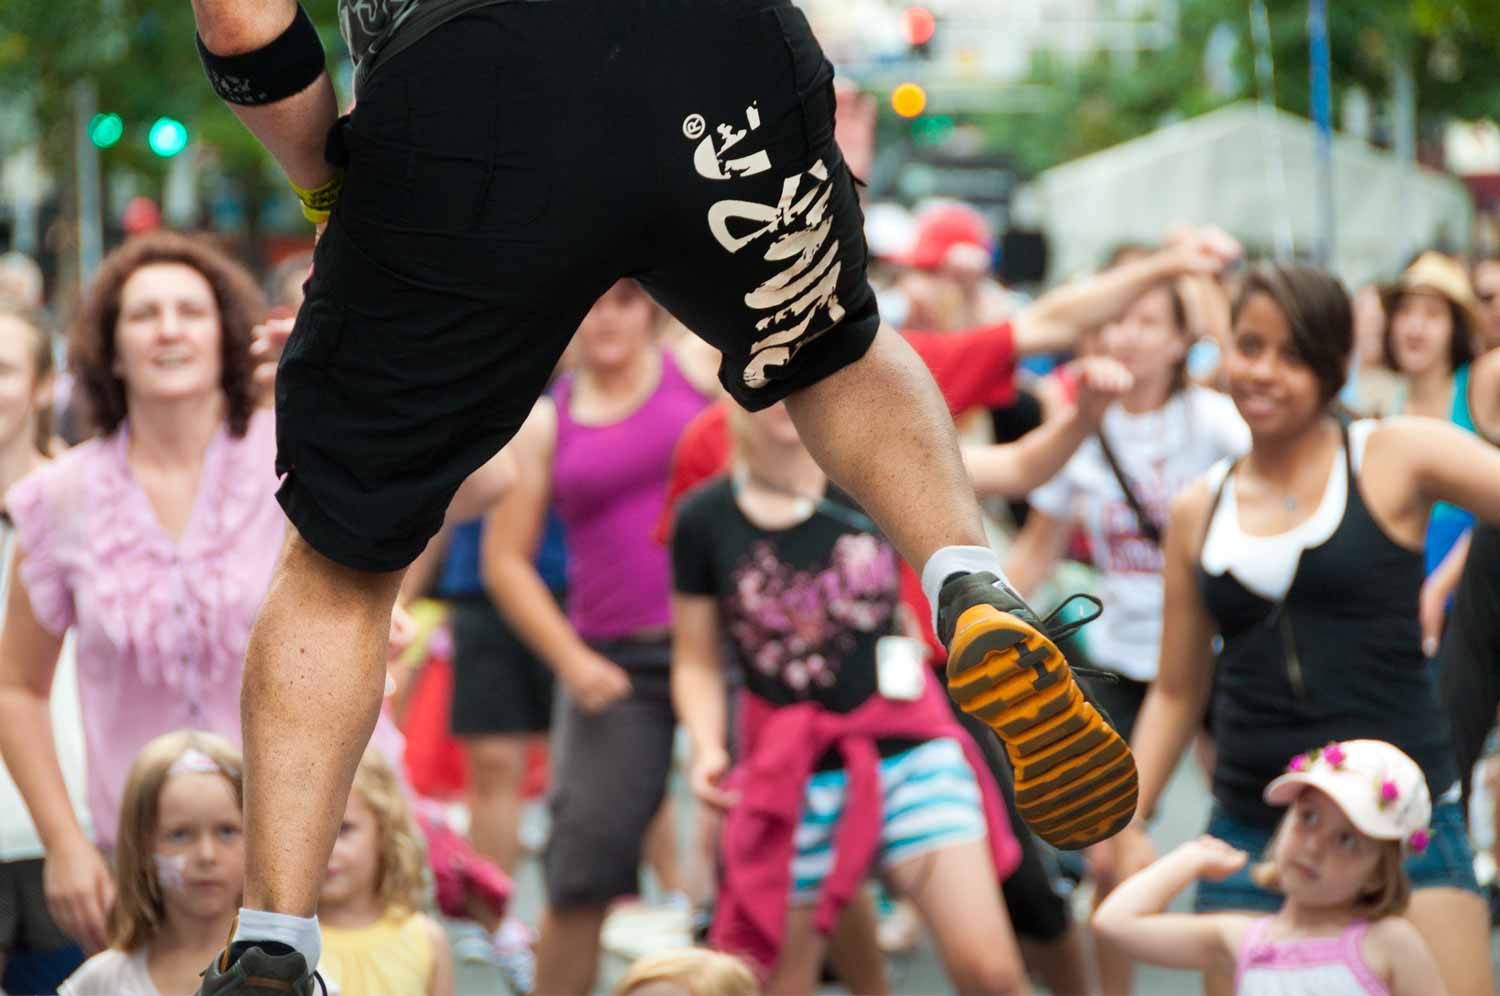 An open Zumba session takes place at the base of Queen St.